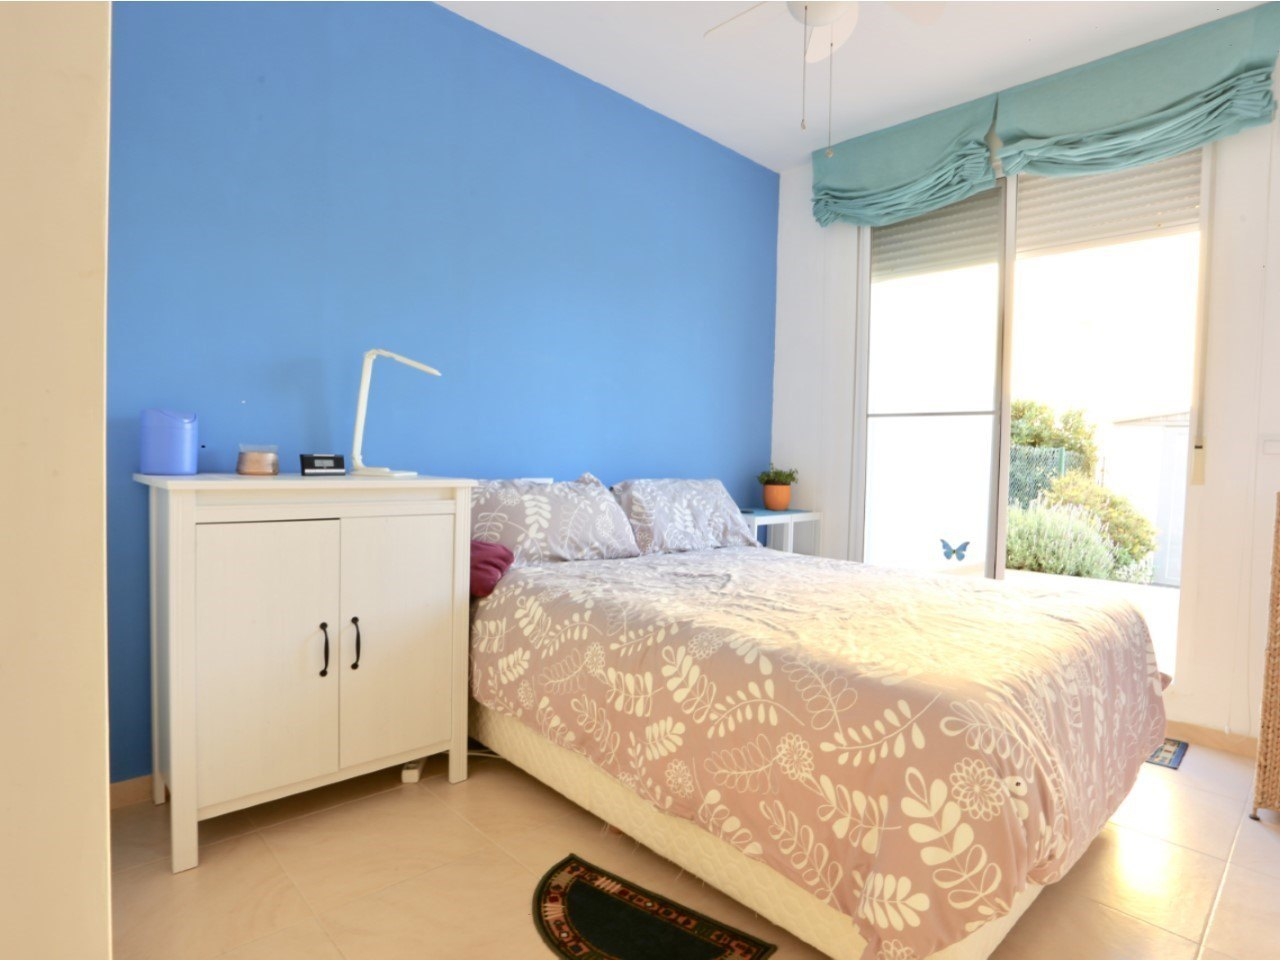 Apartment in DENIA Ground floor apartment with terrace and private garden